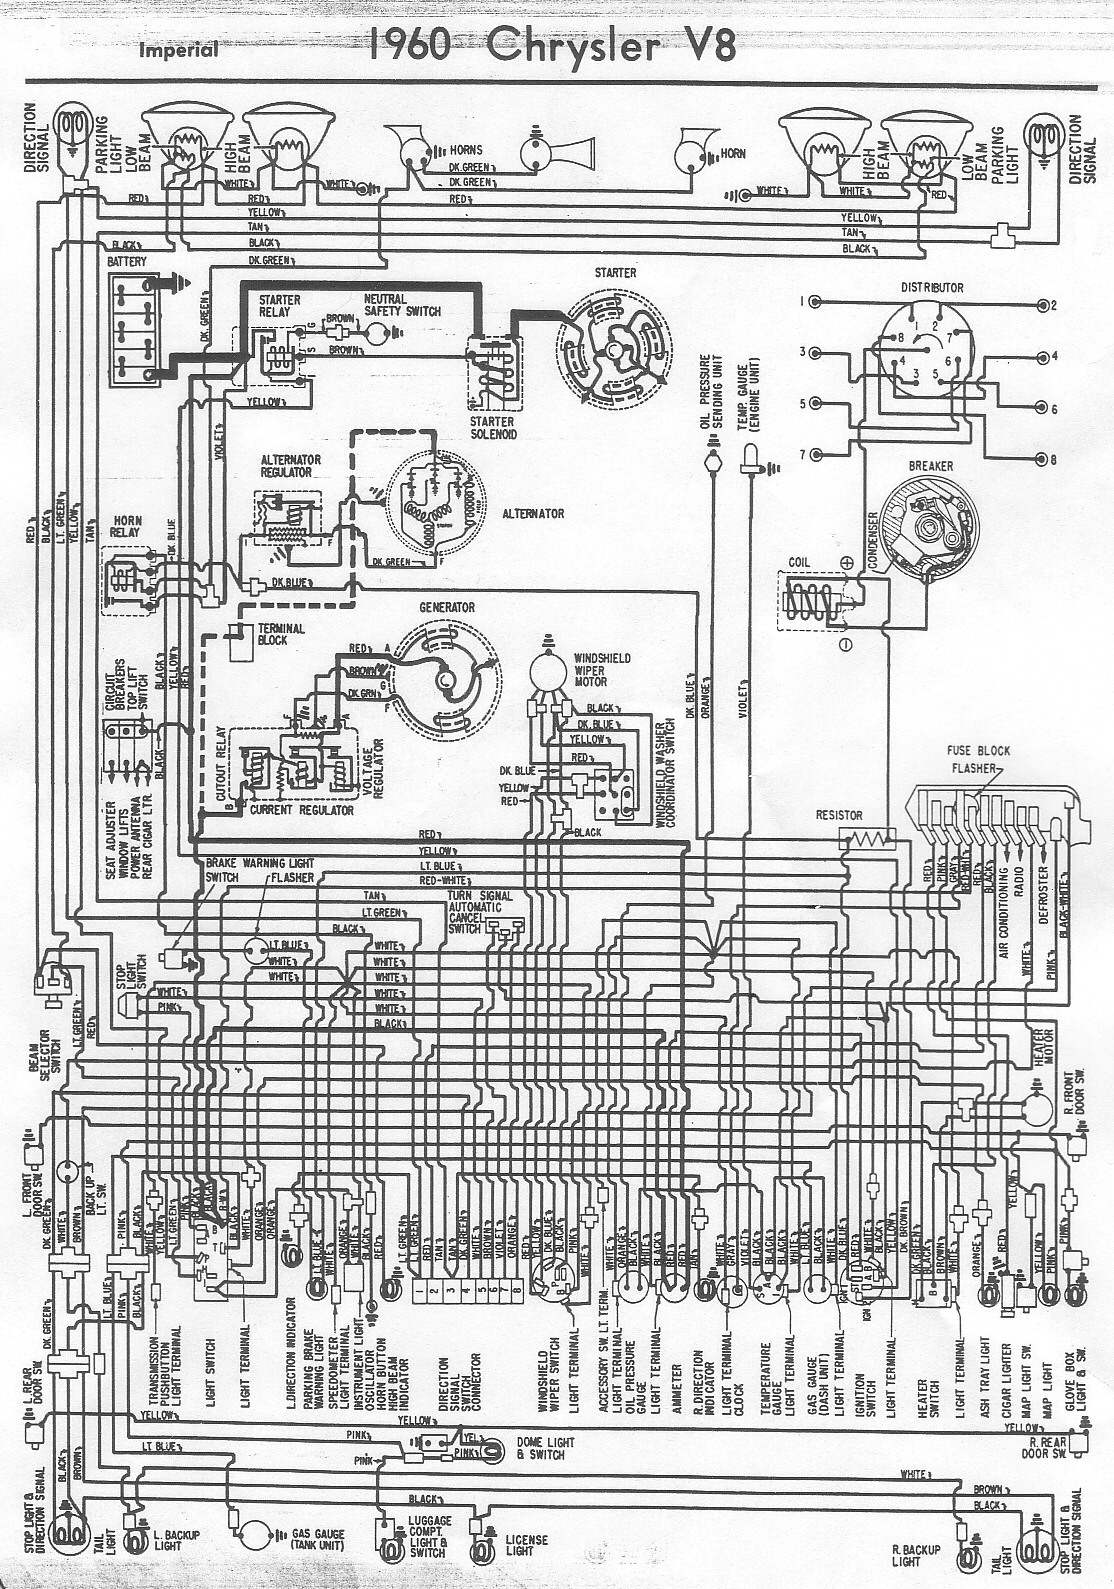 free auto wiring diagram 1960 chrysler v8 imperial wiring 1951 chrysler 2 door hardtop 1955 imperial [ 1114 x 1589 Pixel ]